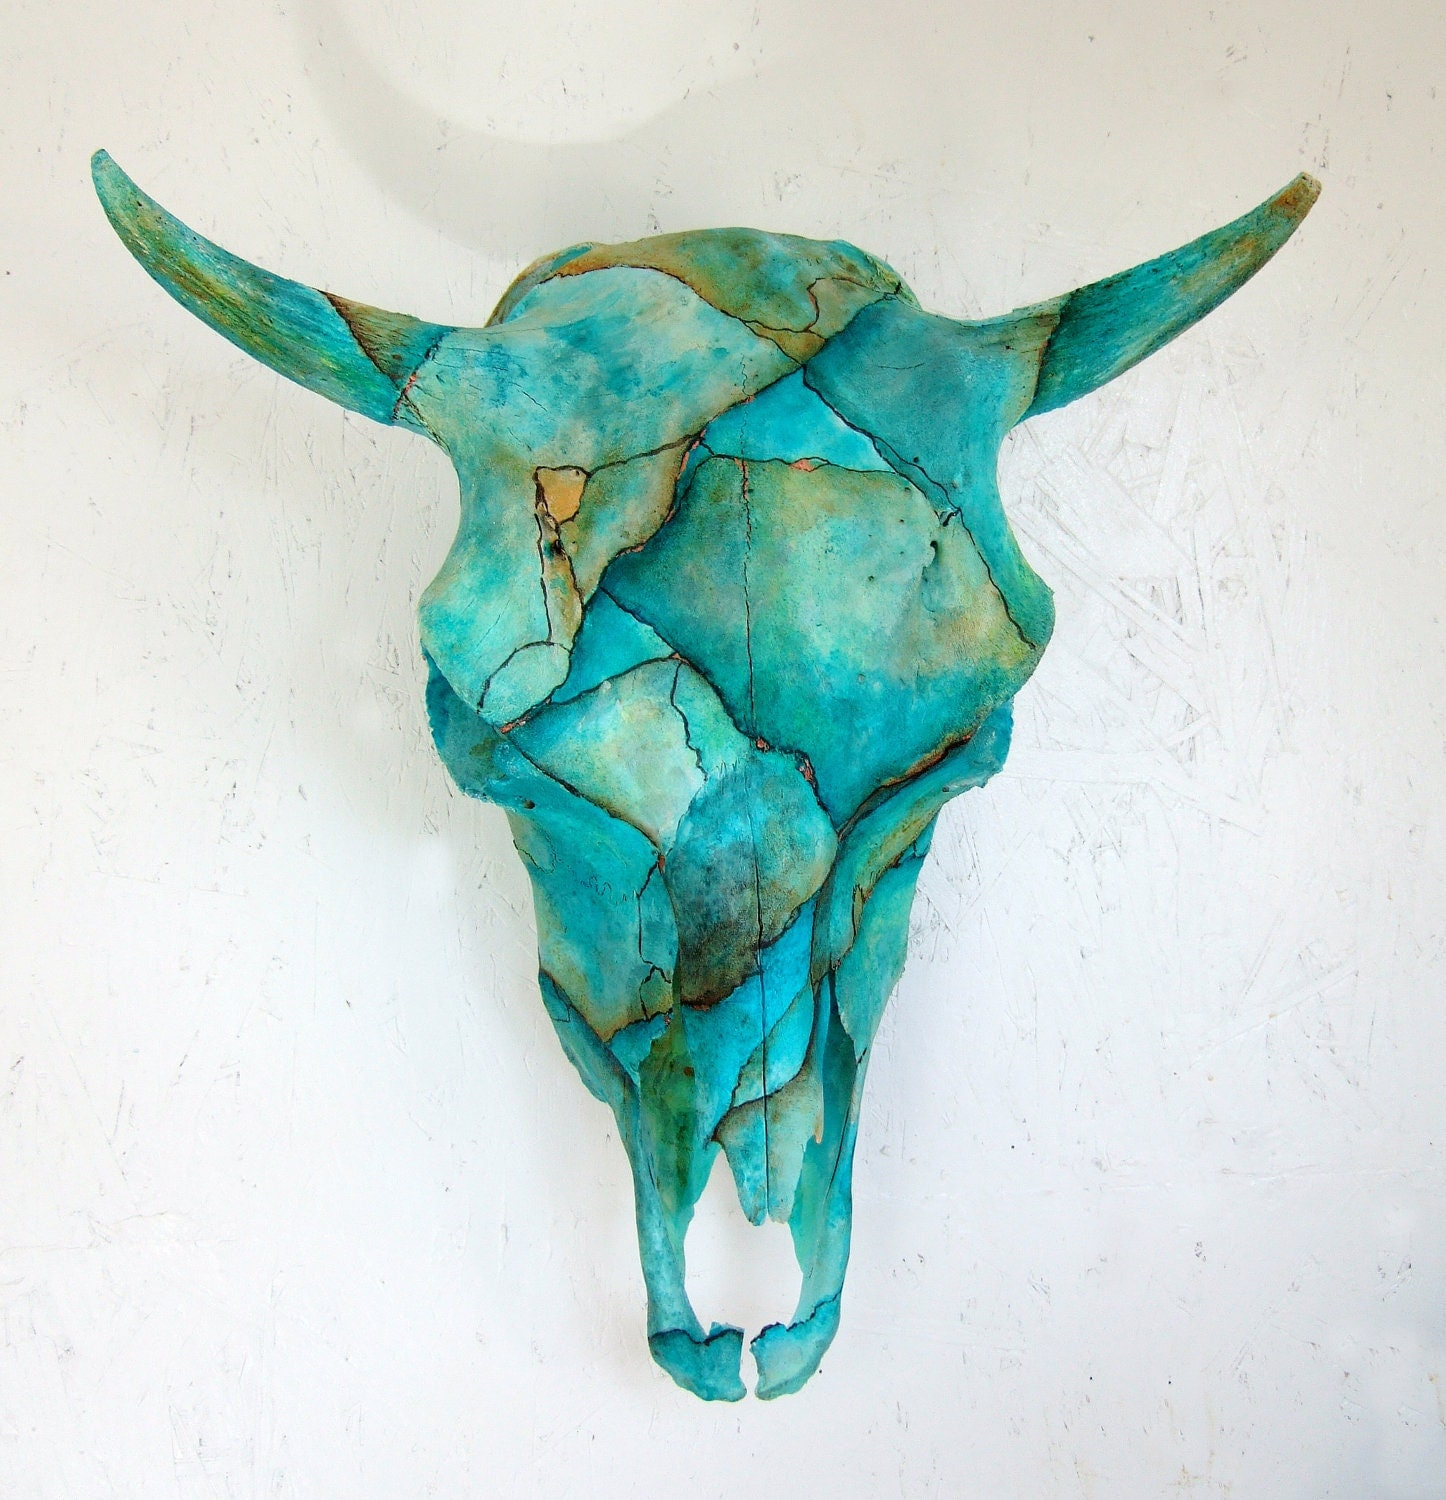 Cow Skull Turquoise Painted Art Sculpture By Windynightstudio